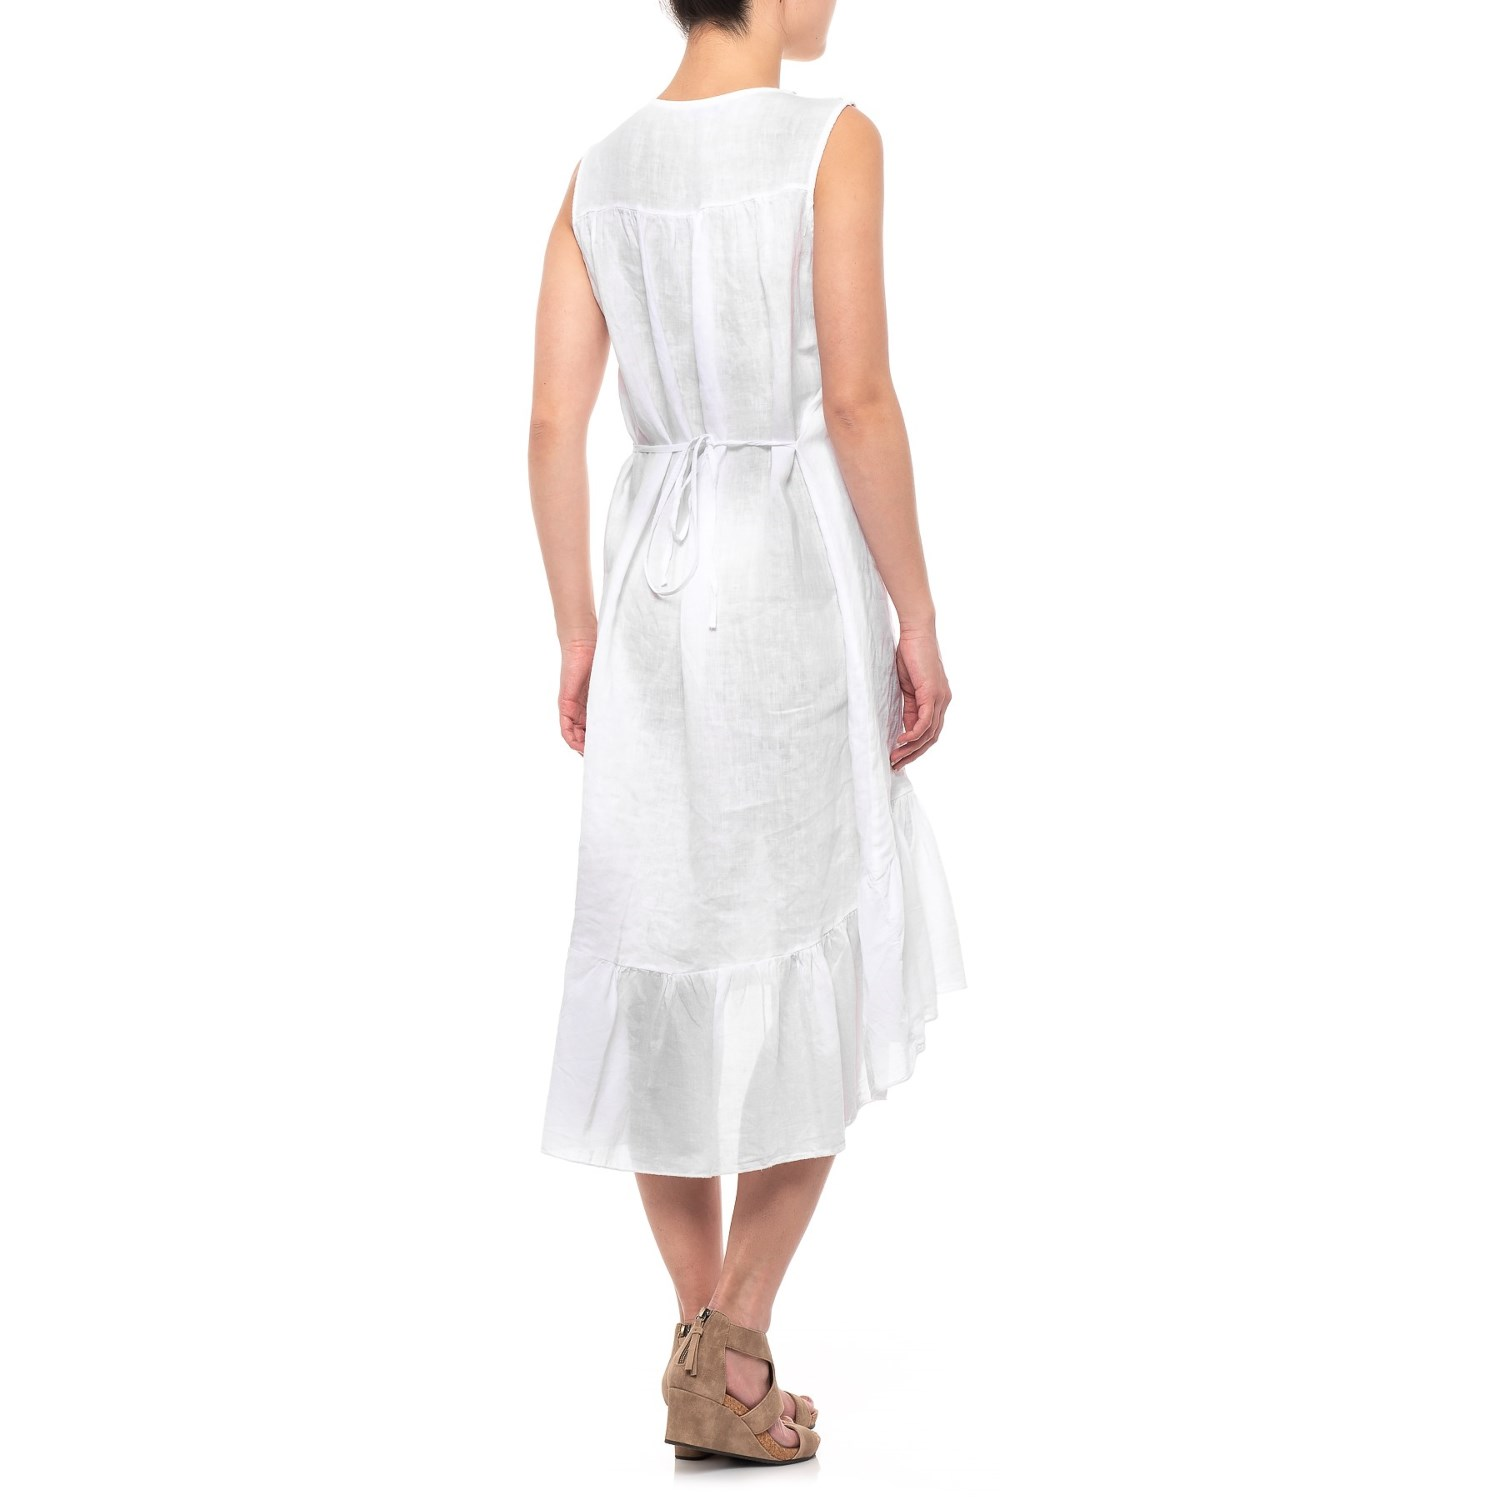 43509be2bd3 Via Signoria Made in Italy Off White Gold Embellished Maxi Dress - Linen